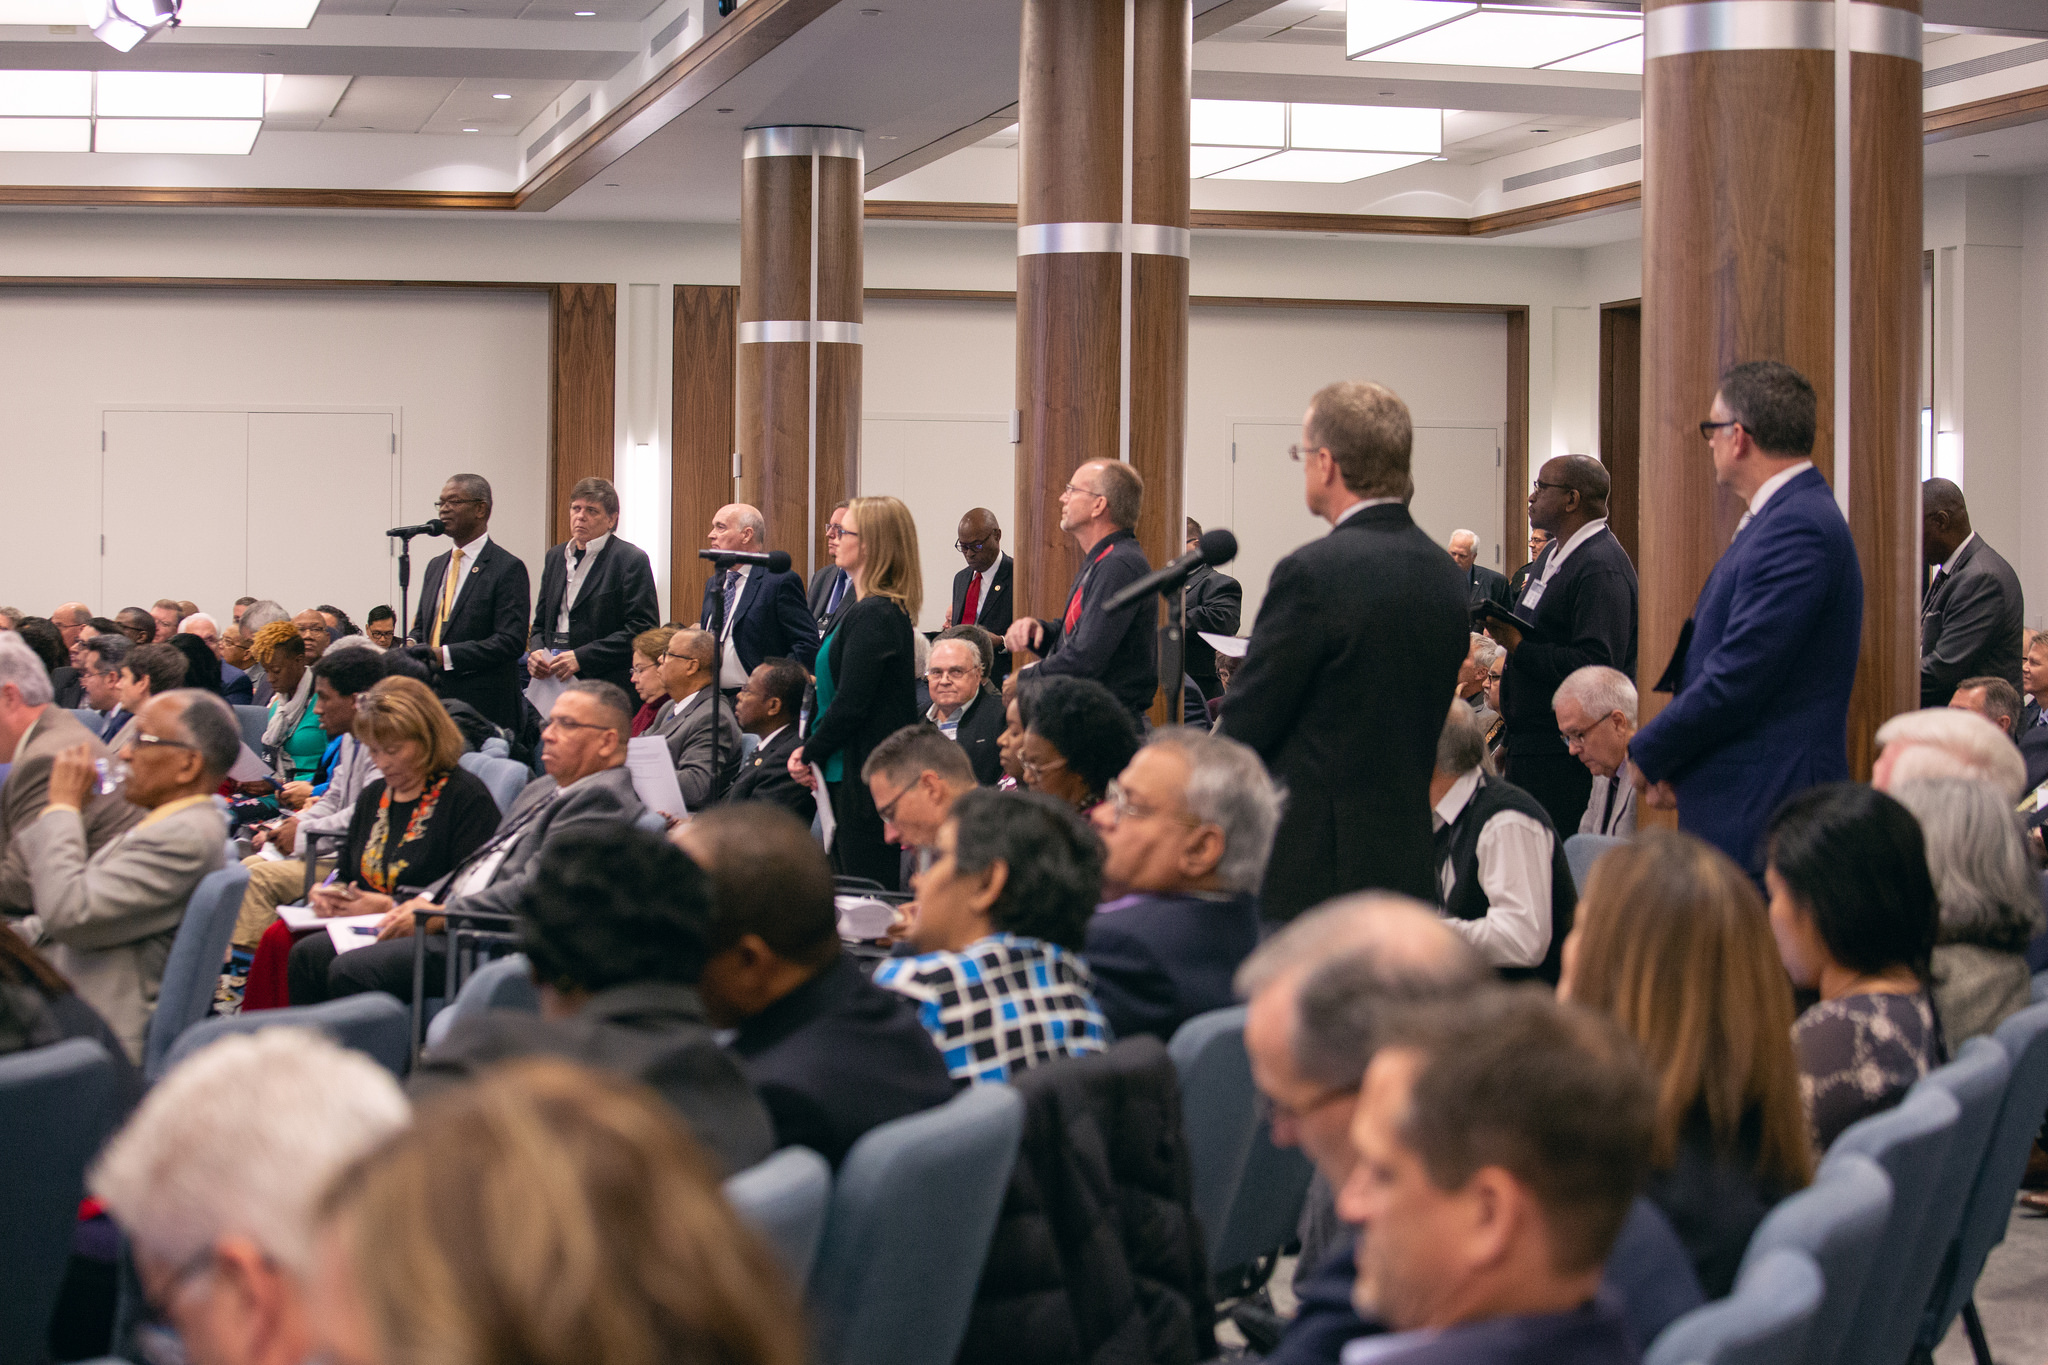 NAD executive committee members line up to speak during the morning discussion on the GC document voted at Annual Council that sets forth the creation of a new compliance process to assist with the need to implement church policies and voted actions.